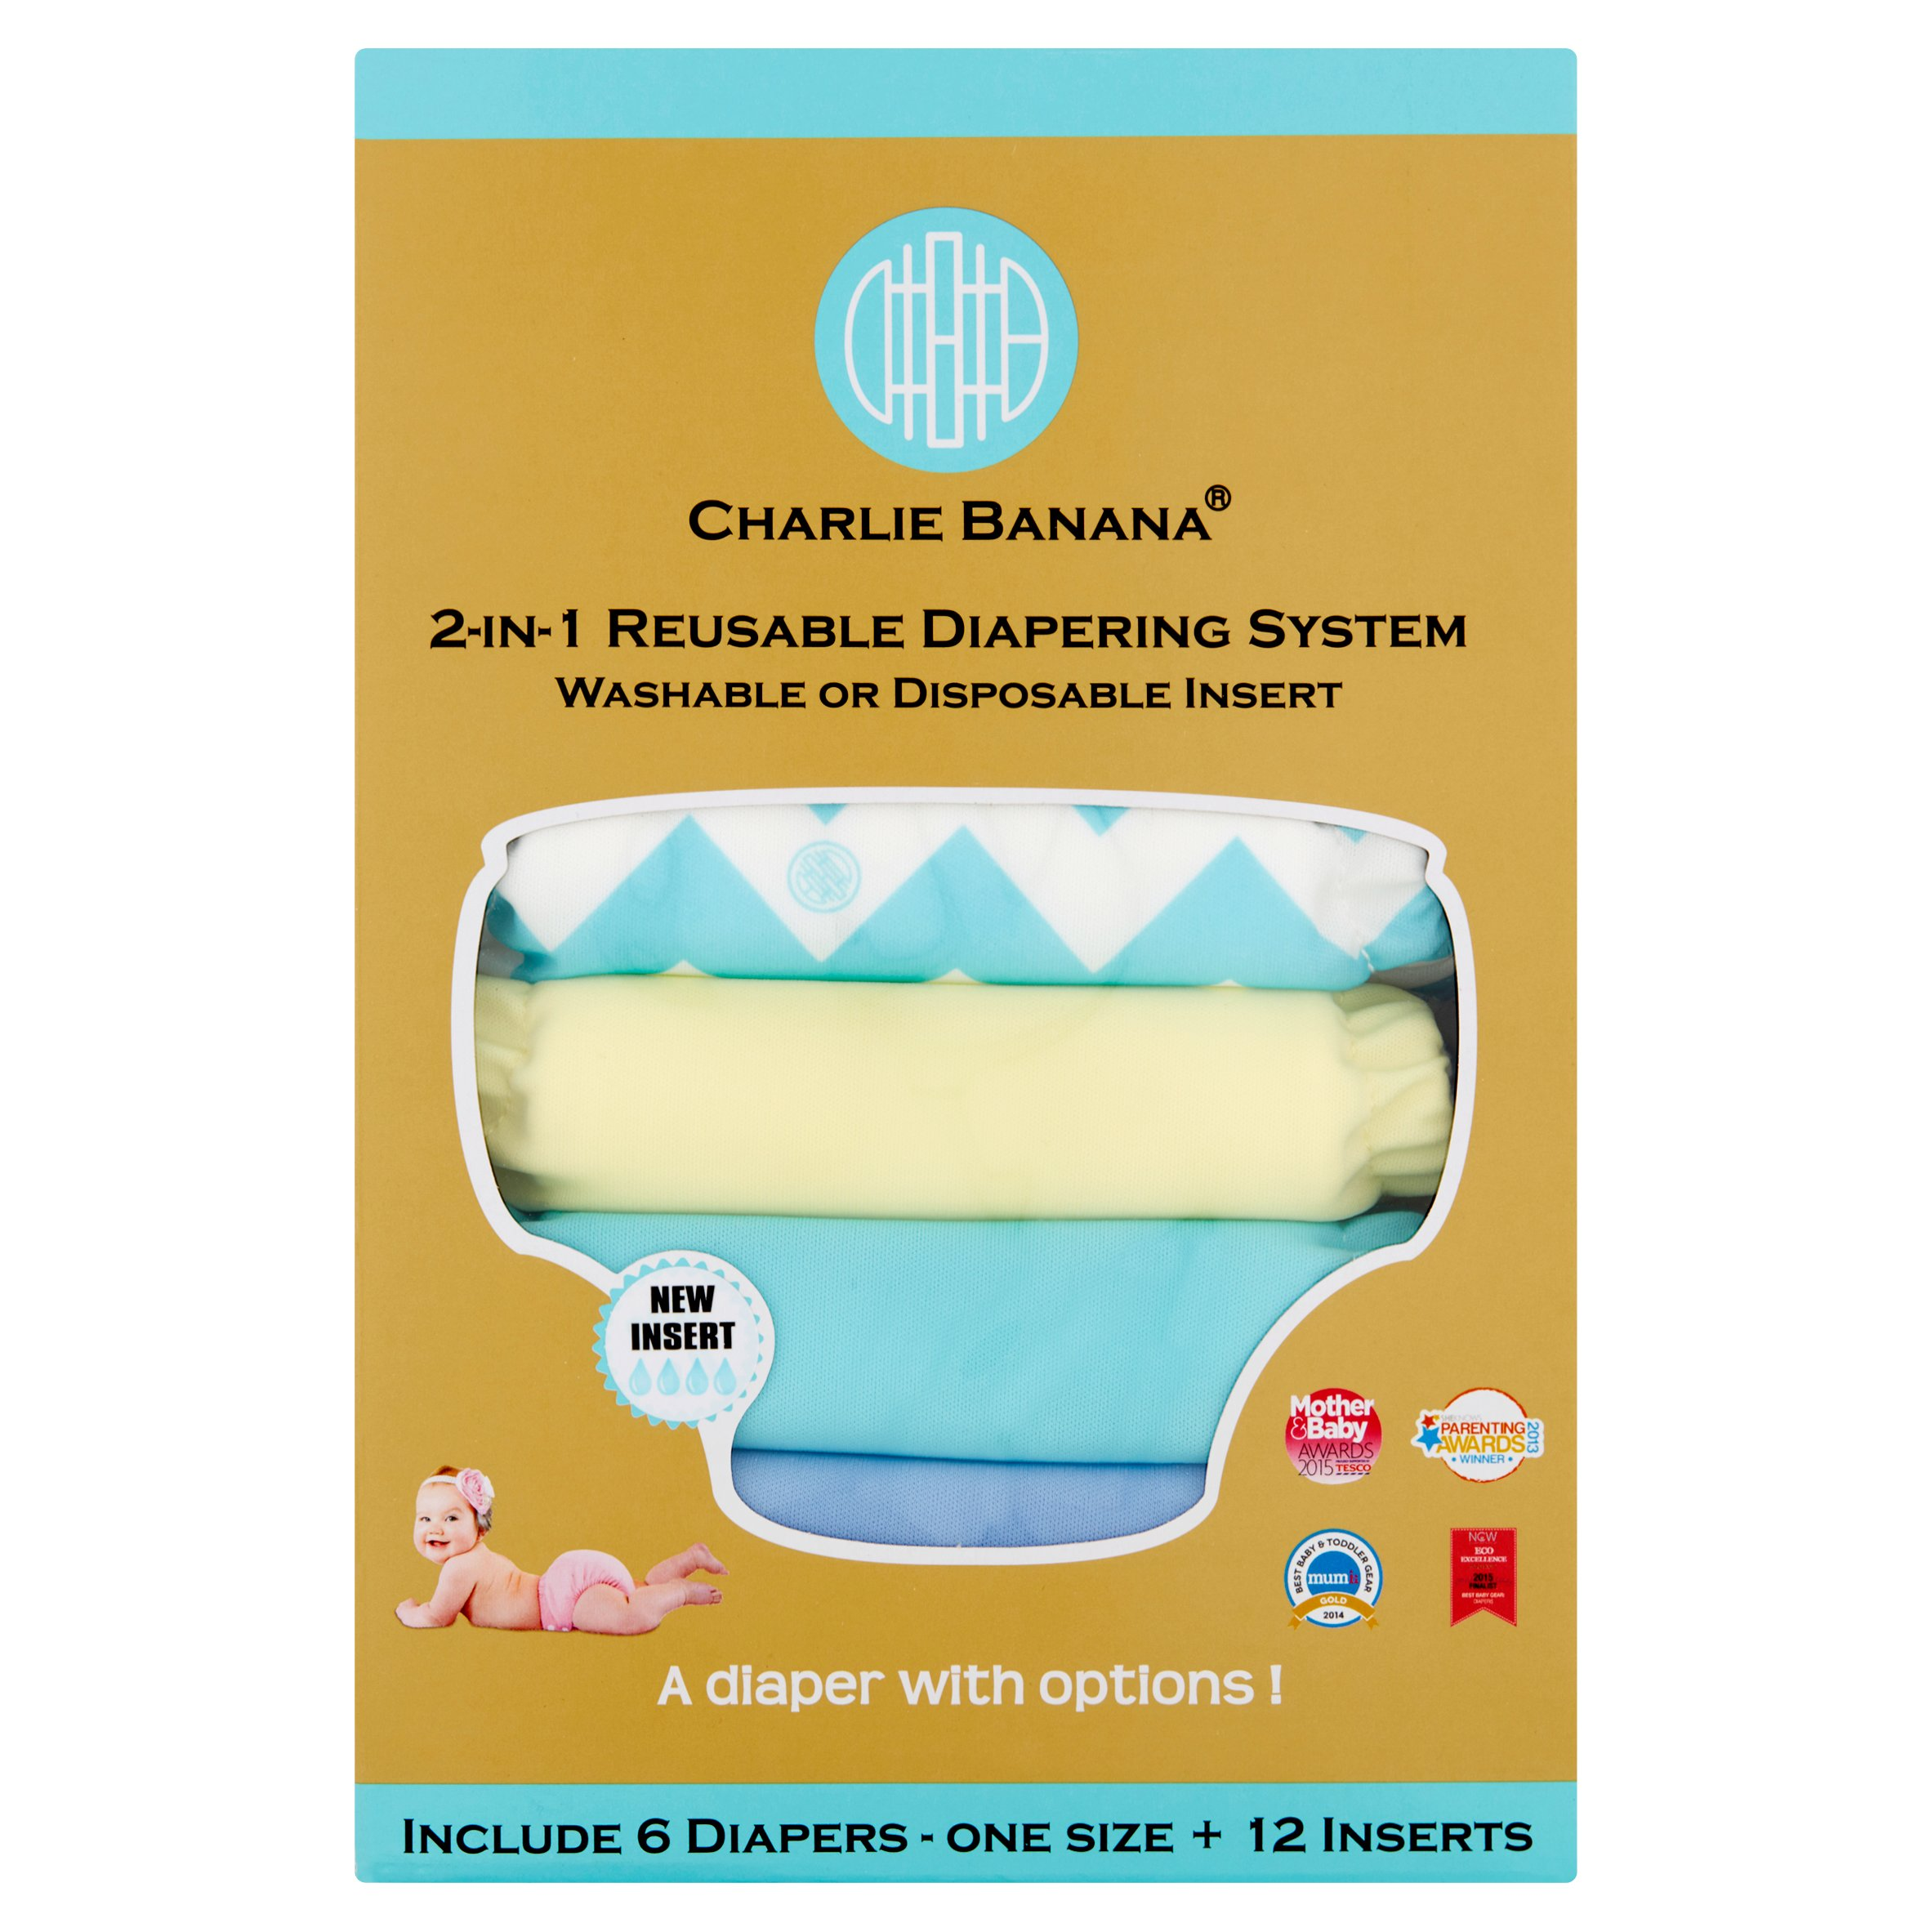 Charlie Banana 888332 6 Diapers 12 Inserts Uni-Chevron Hybrid AIO Diapering System One Size by Charlie Banana